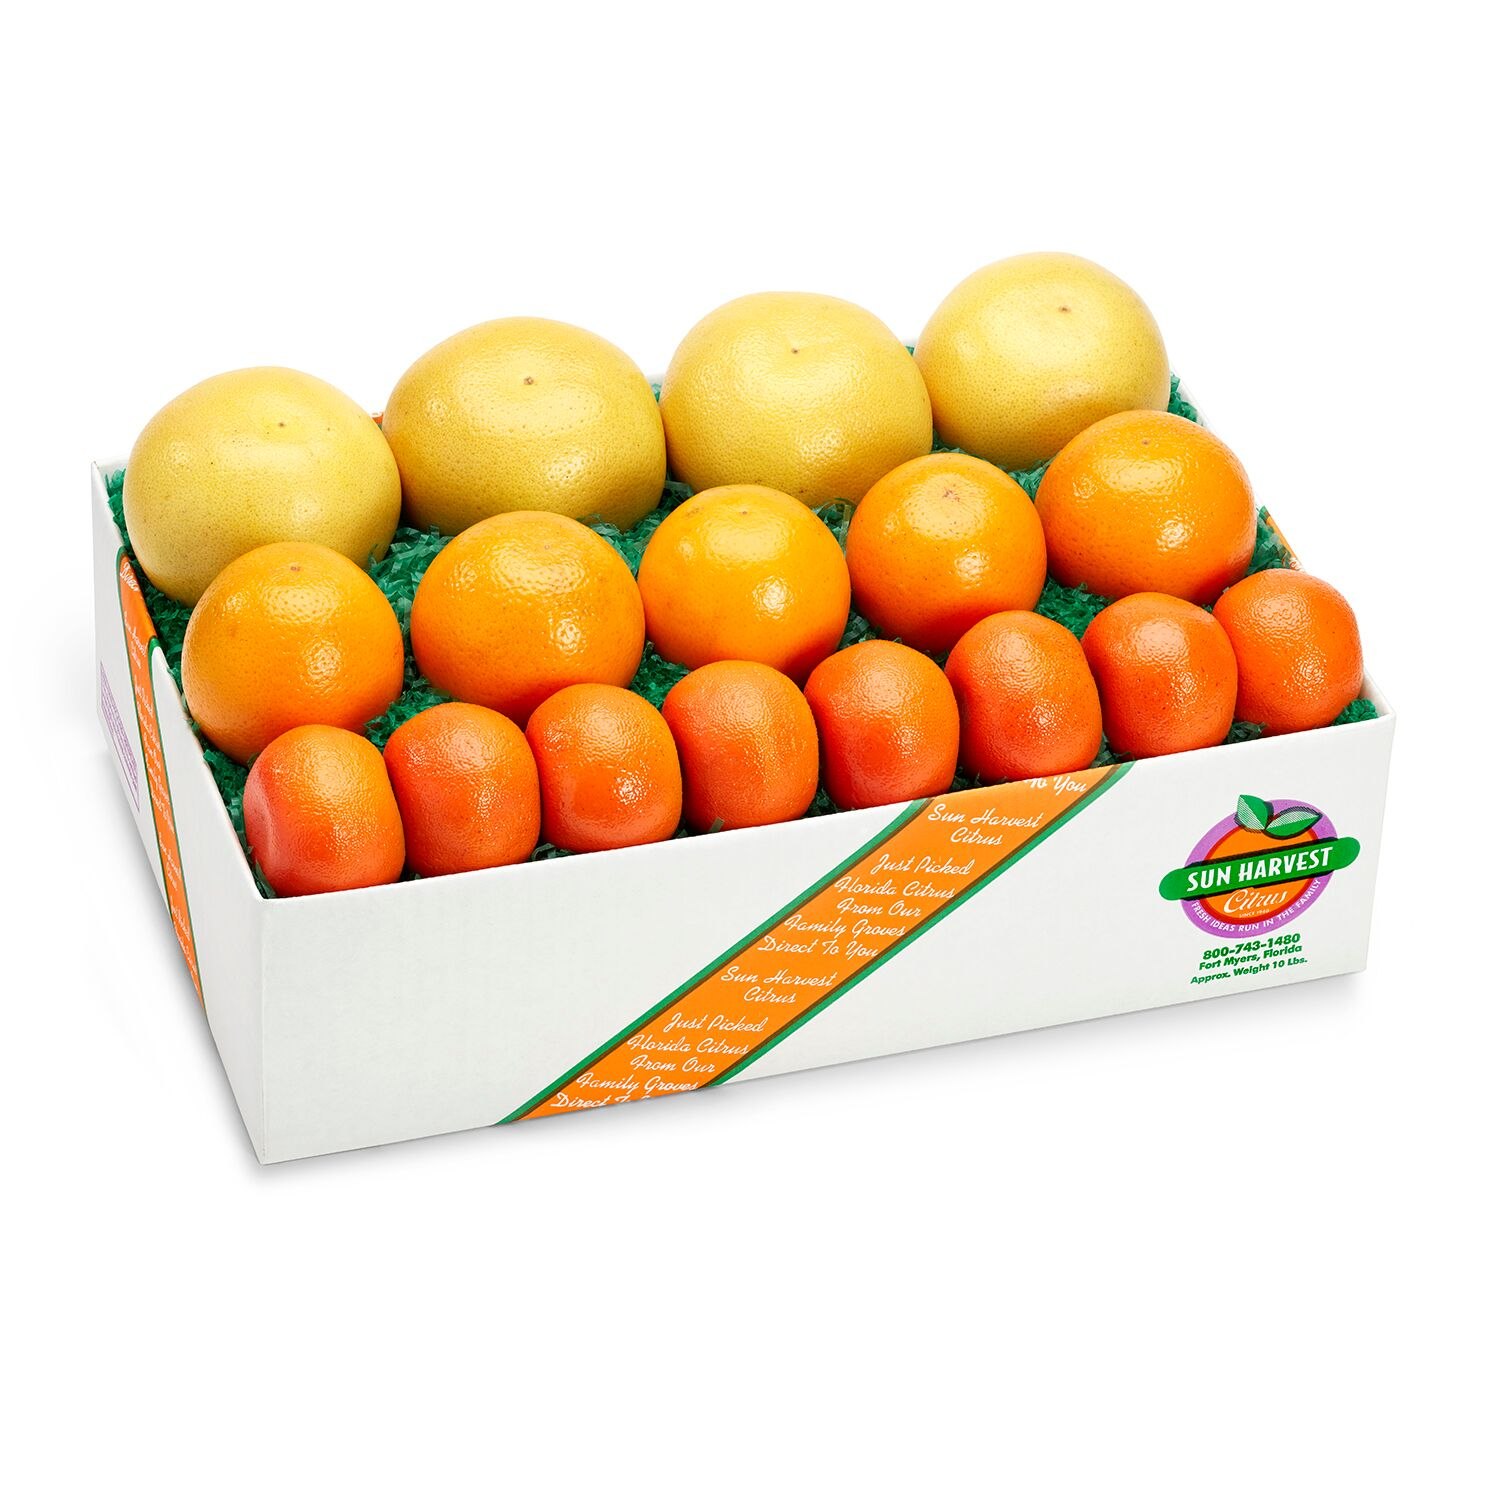 Original Citrus Threesome